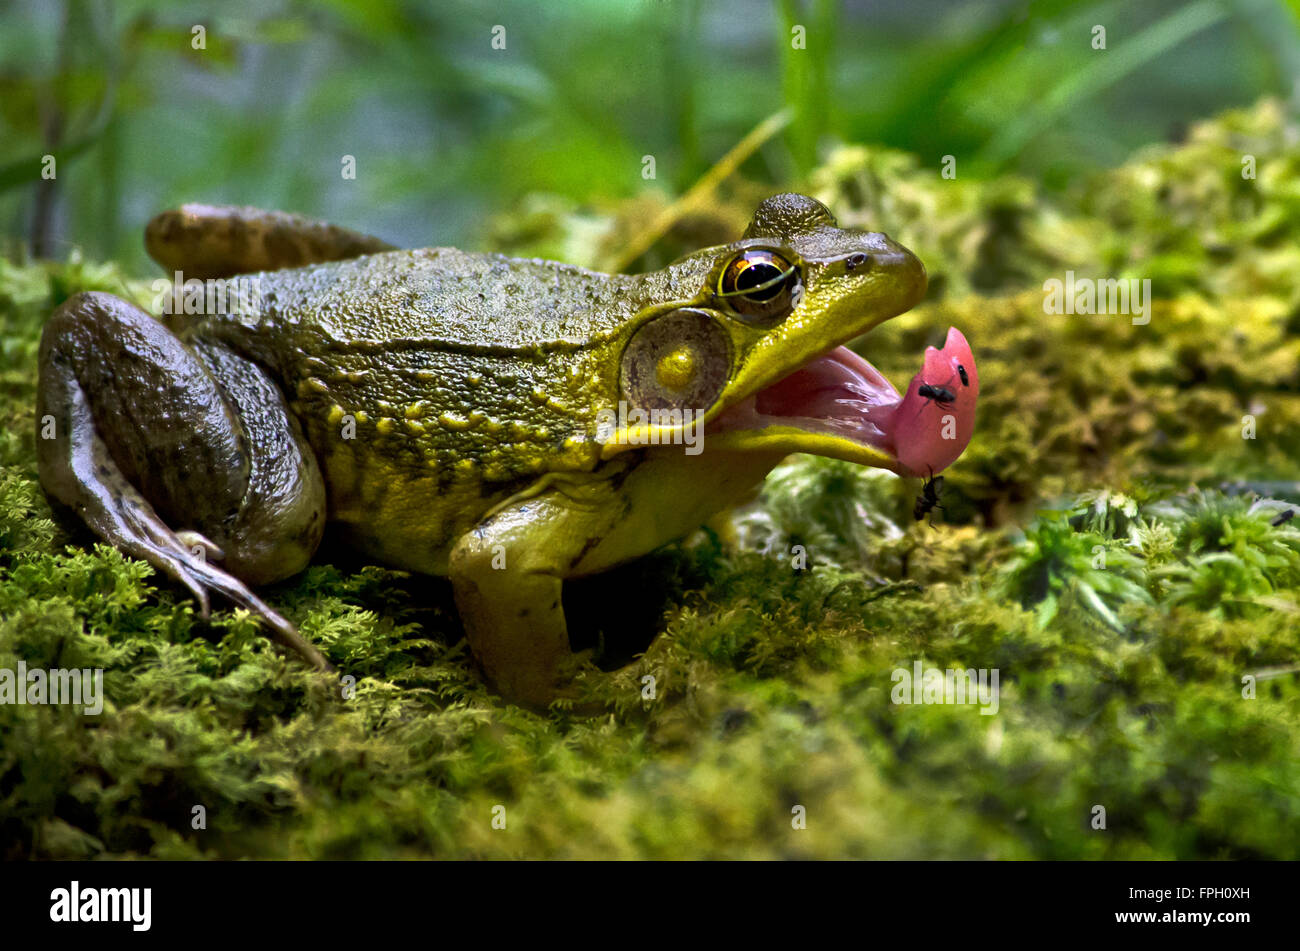 Frog catching flies with mouth open close up Stock Photo ...